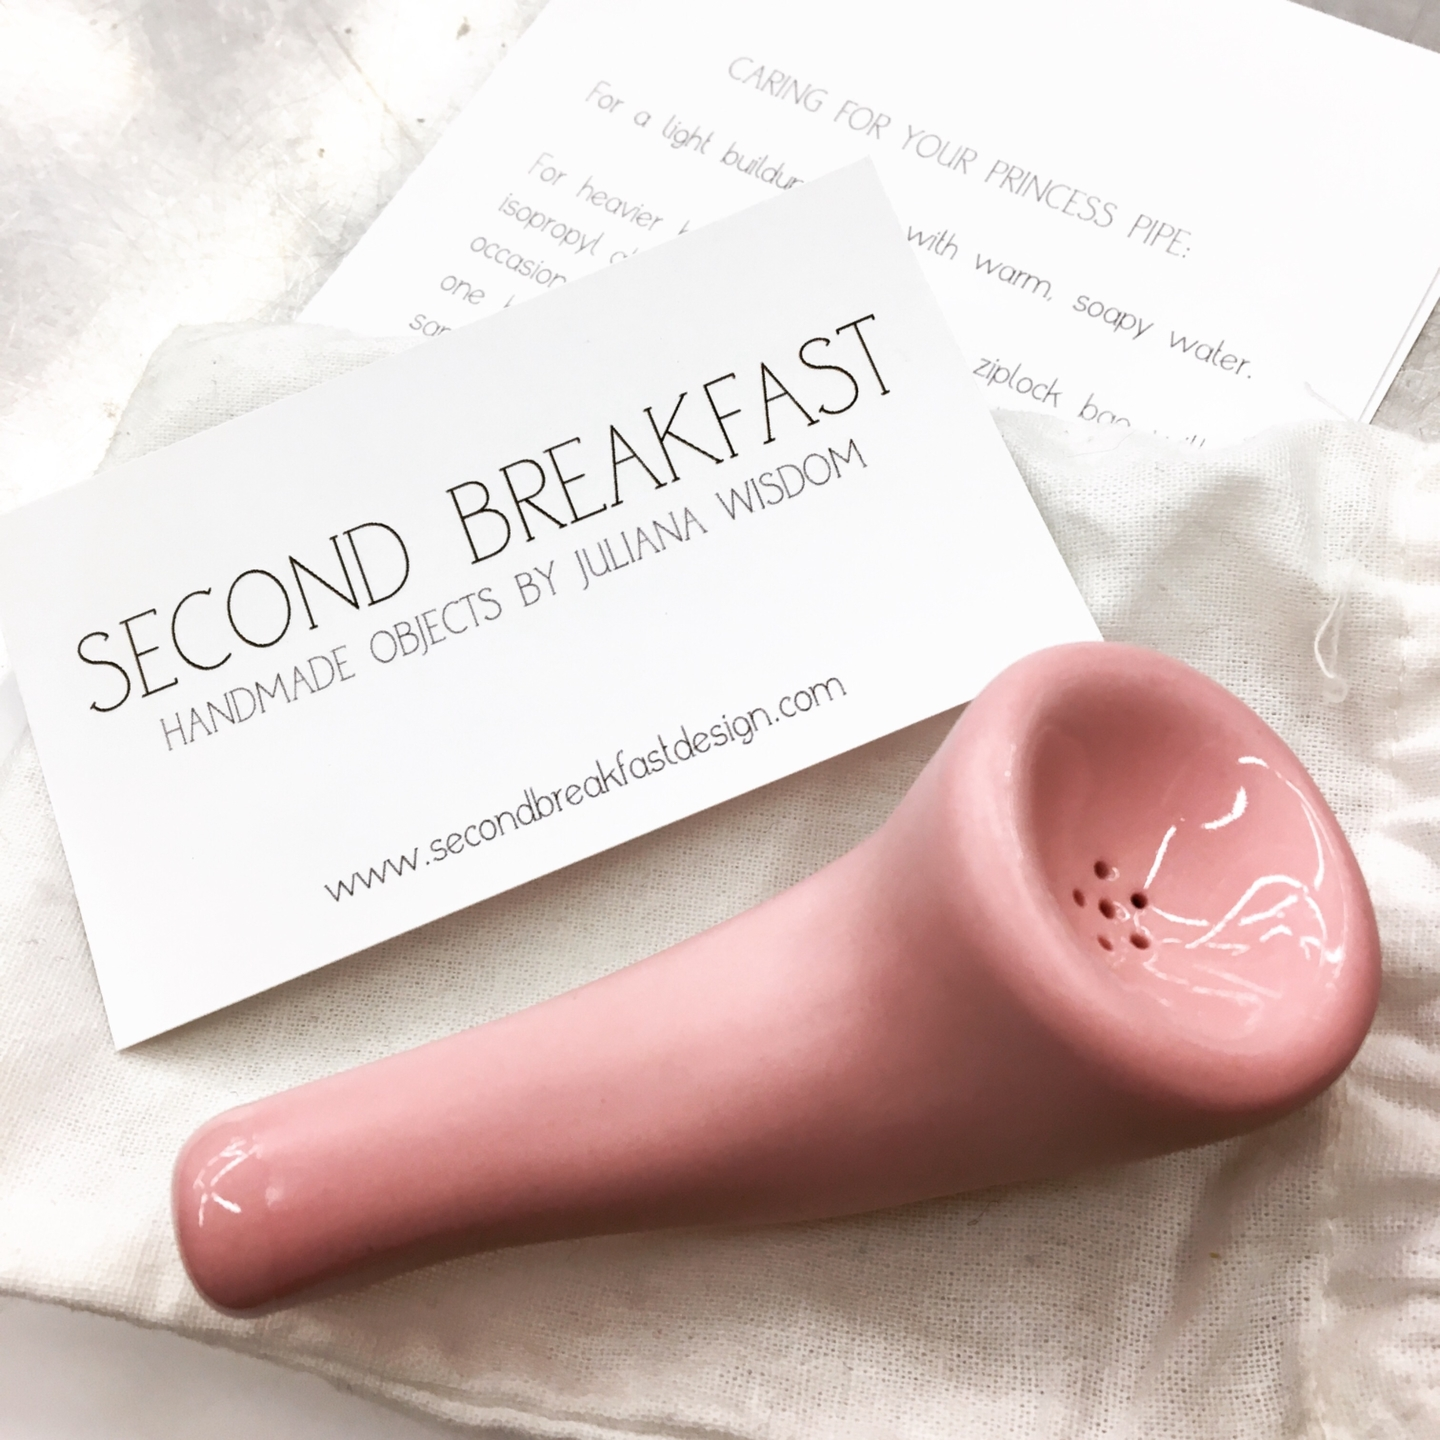 Second Breakfast Design (@secondbreakfastdesign) Cover Image